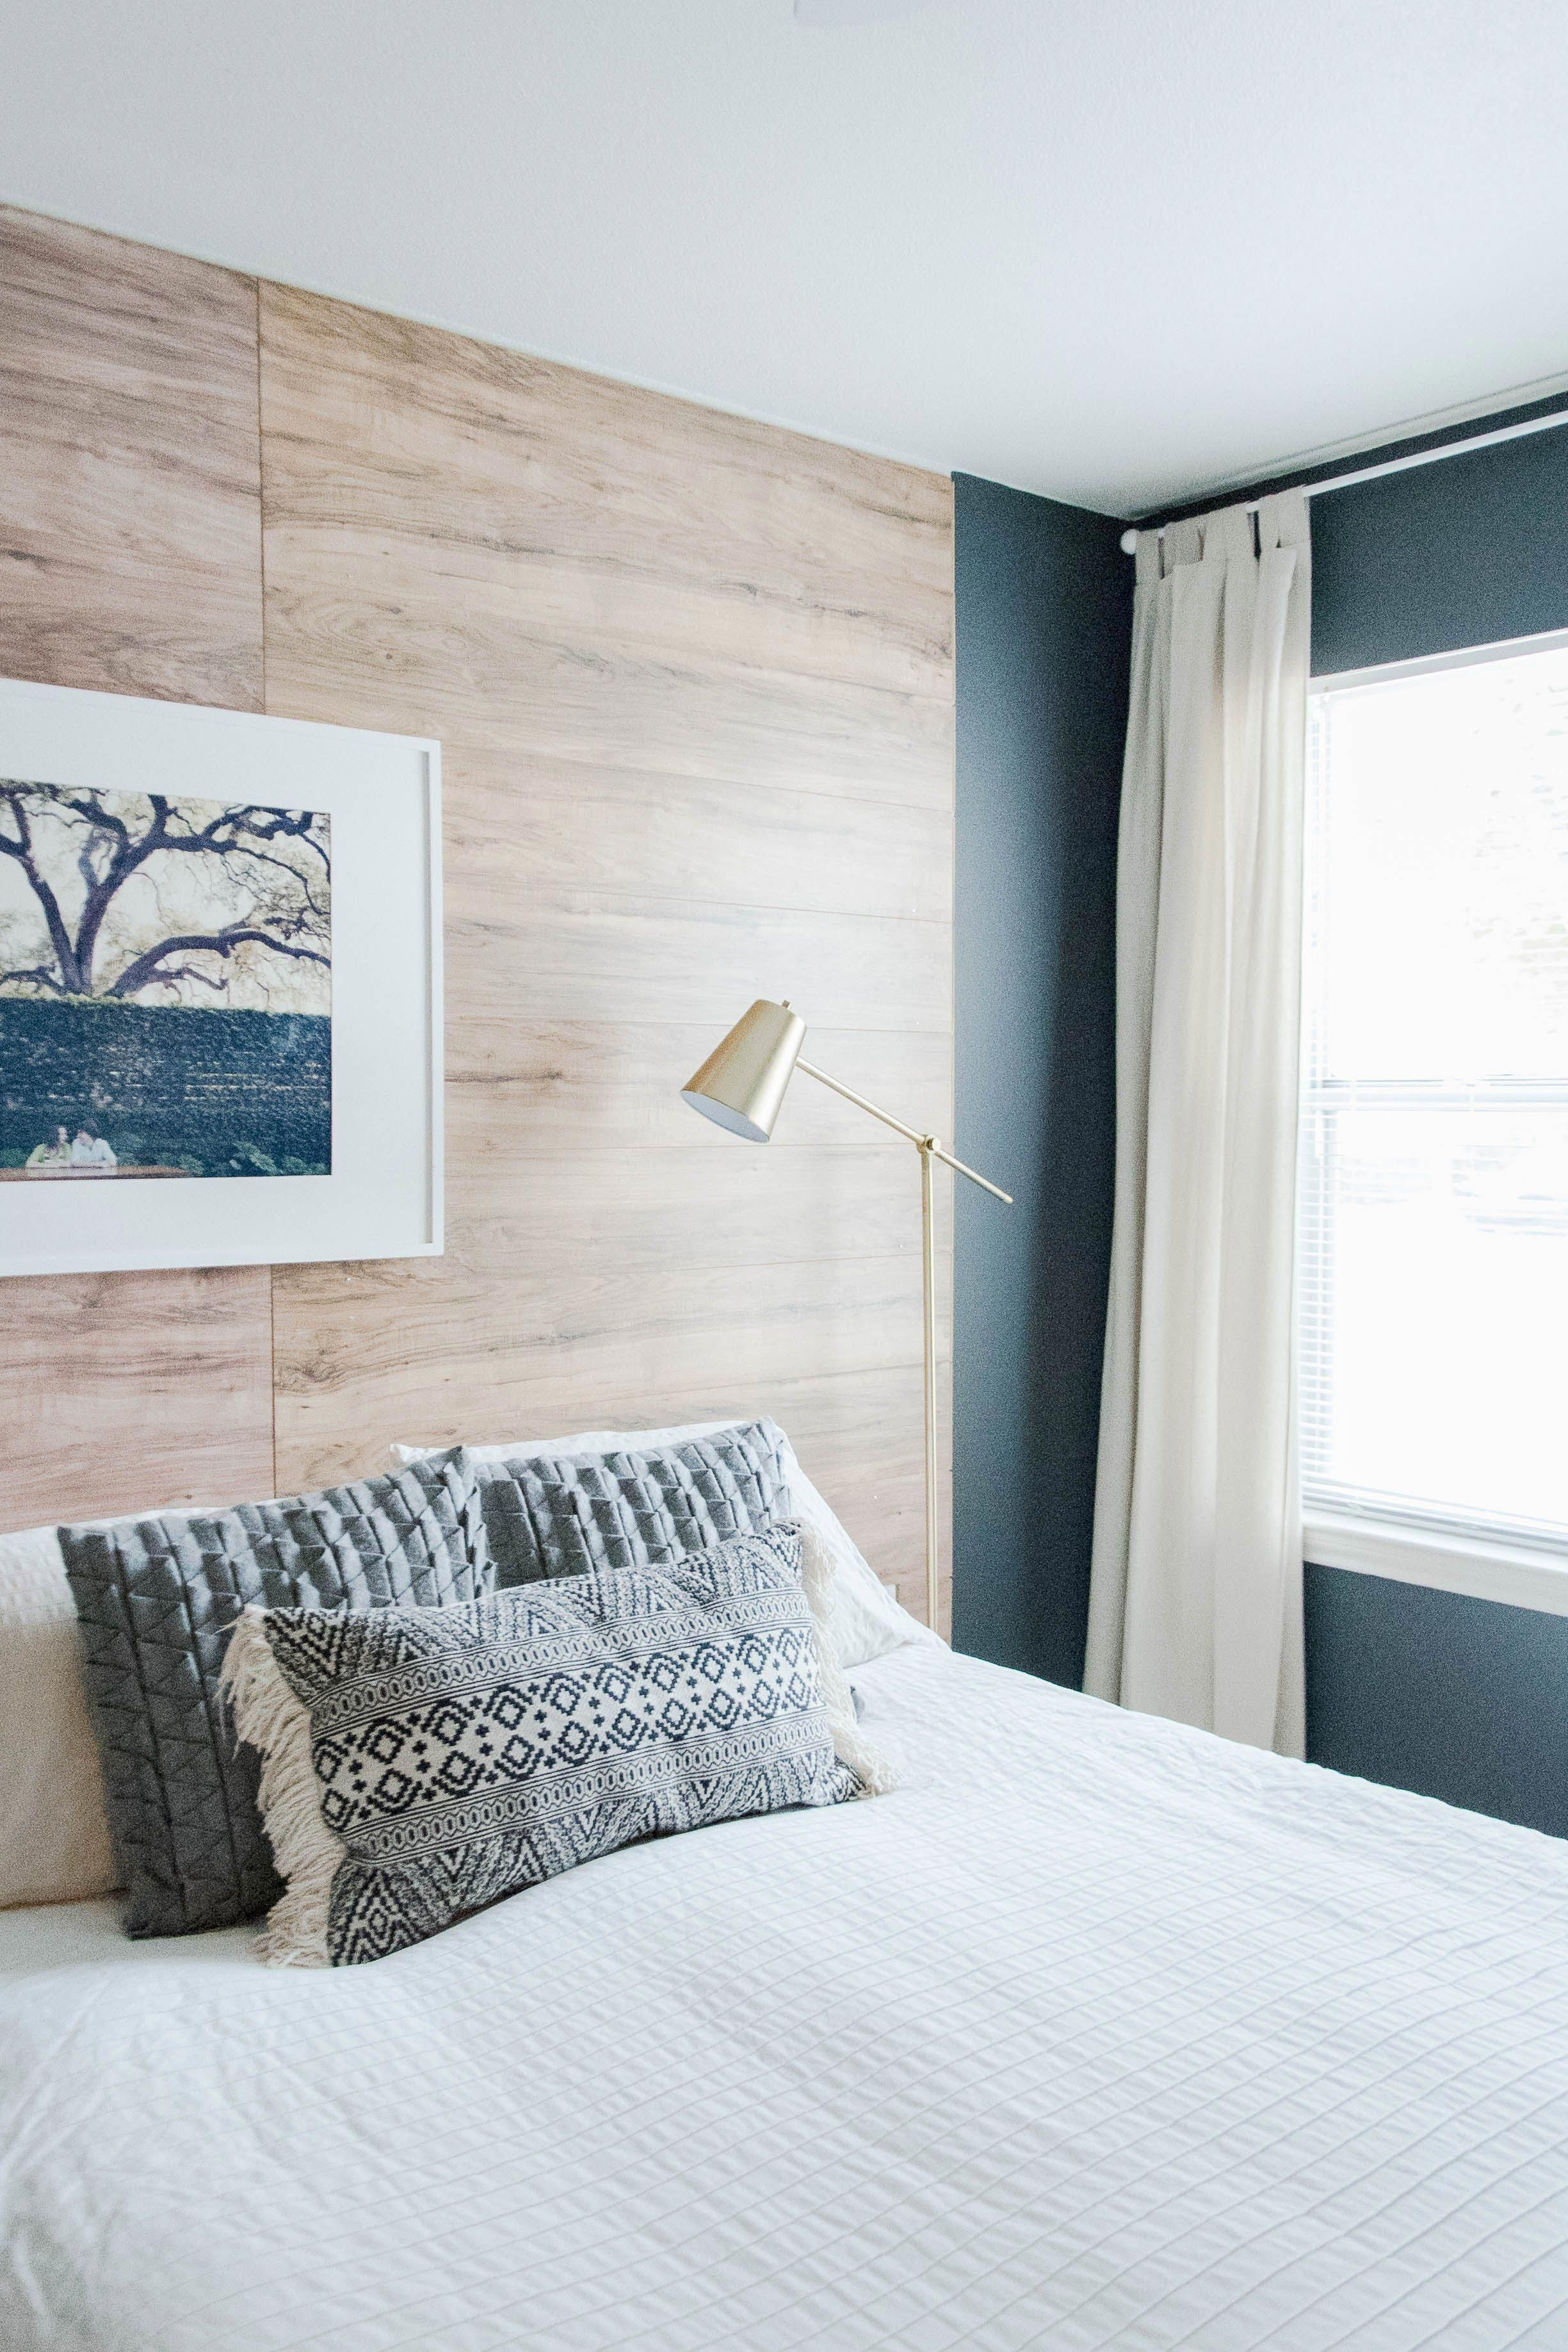 The Dark Blue Walls Against The Soft White Bedding And Wooden Wall Accent Create A Really Peaceful Remodel Bedroom Small Bedroom Remodel Master Bedroom Remodel